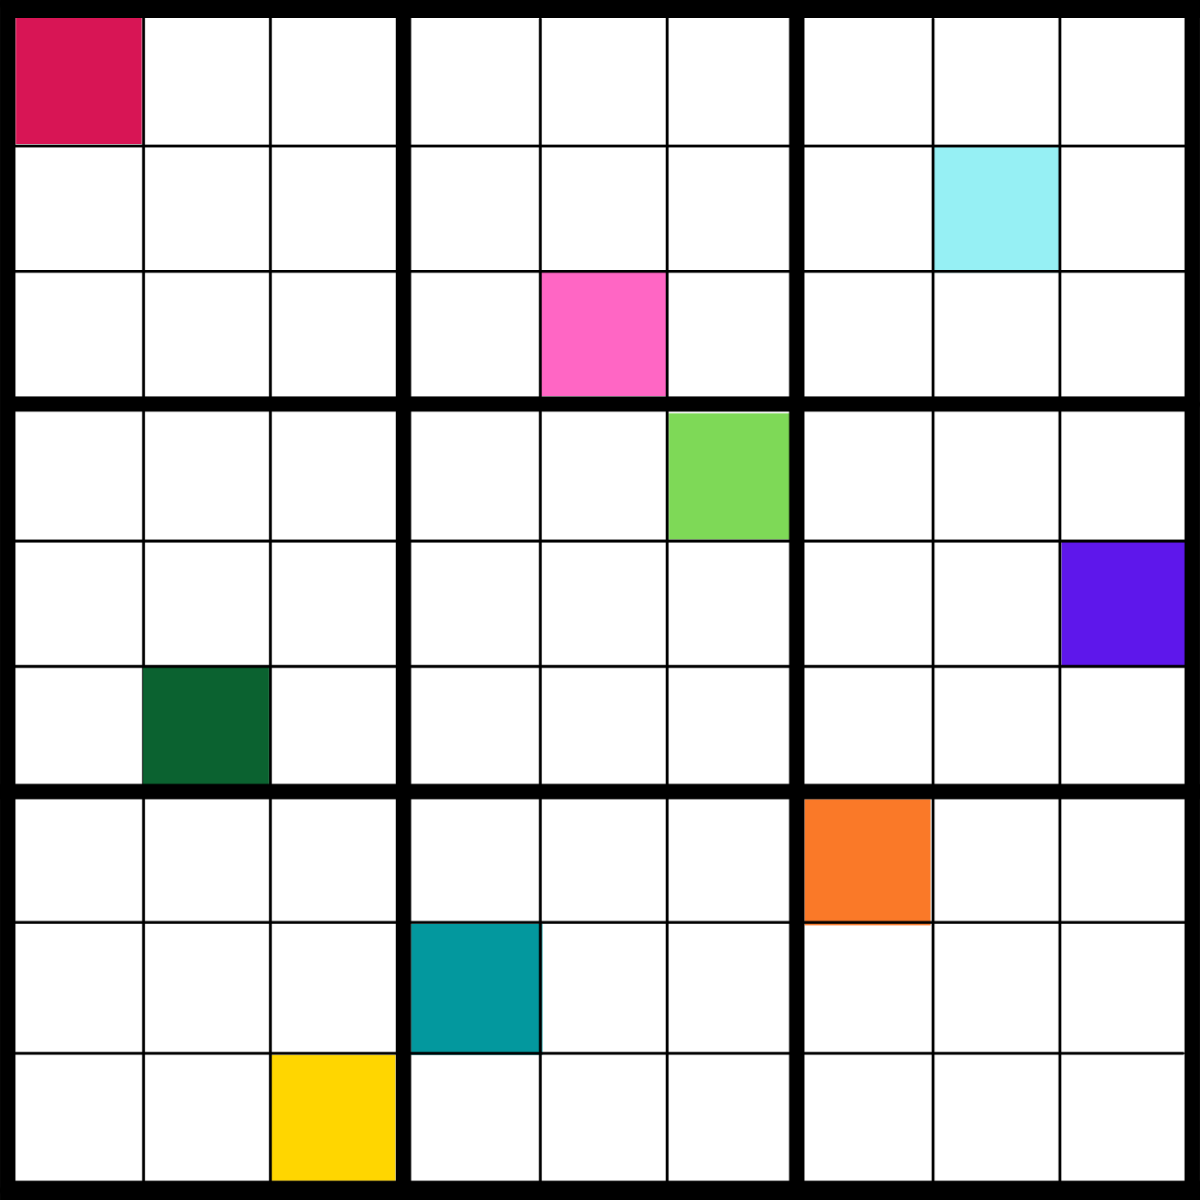 You solve color sudoku puzzles the same way as regular sudoku, except you use colors instead of numbers.